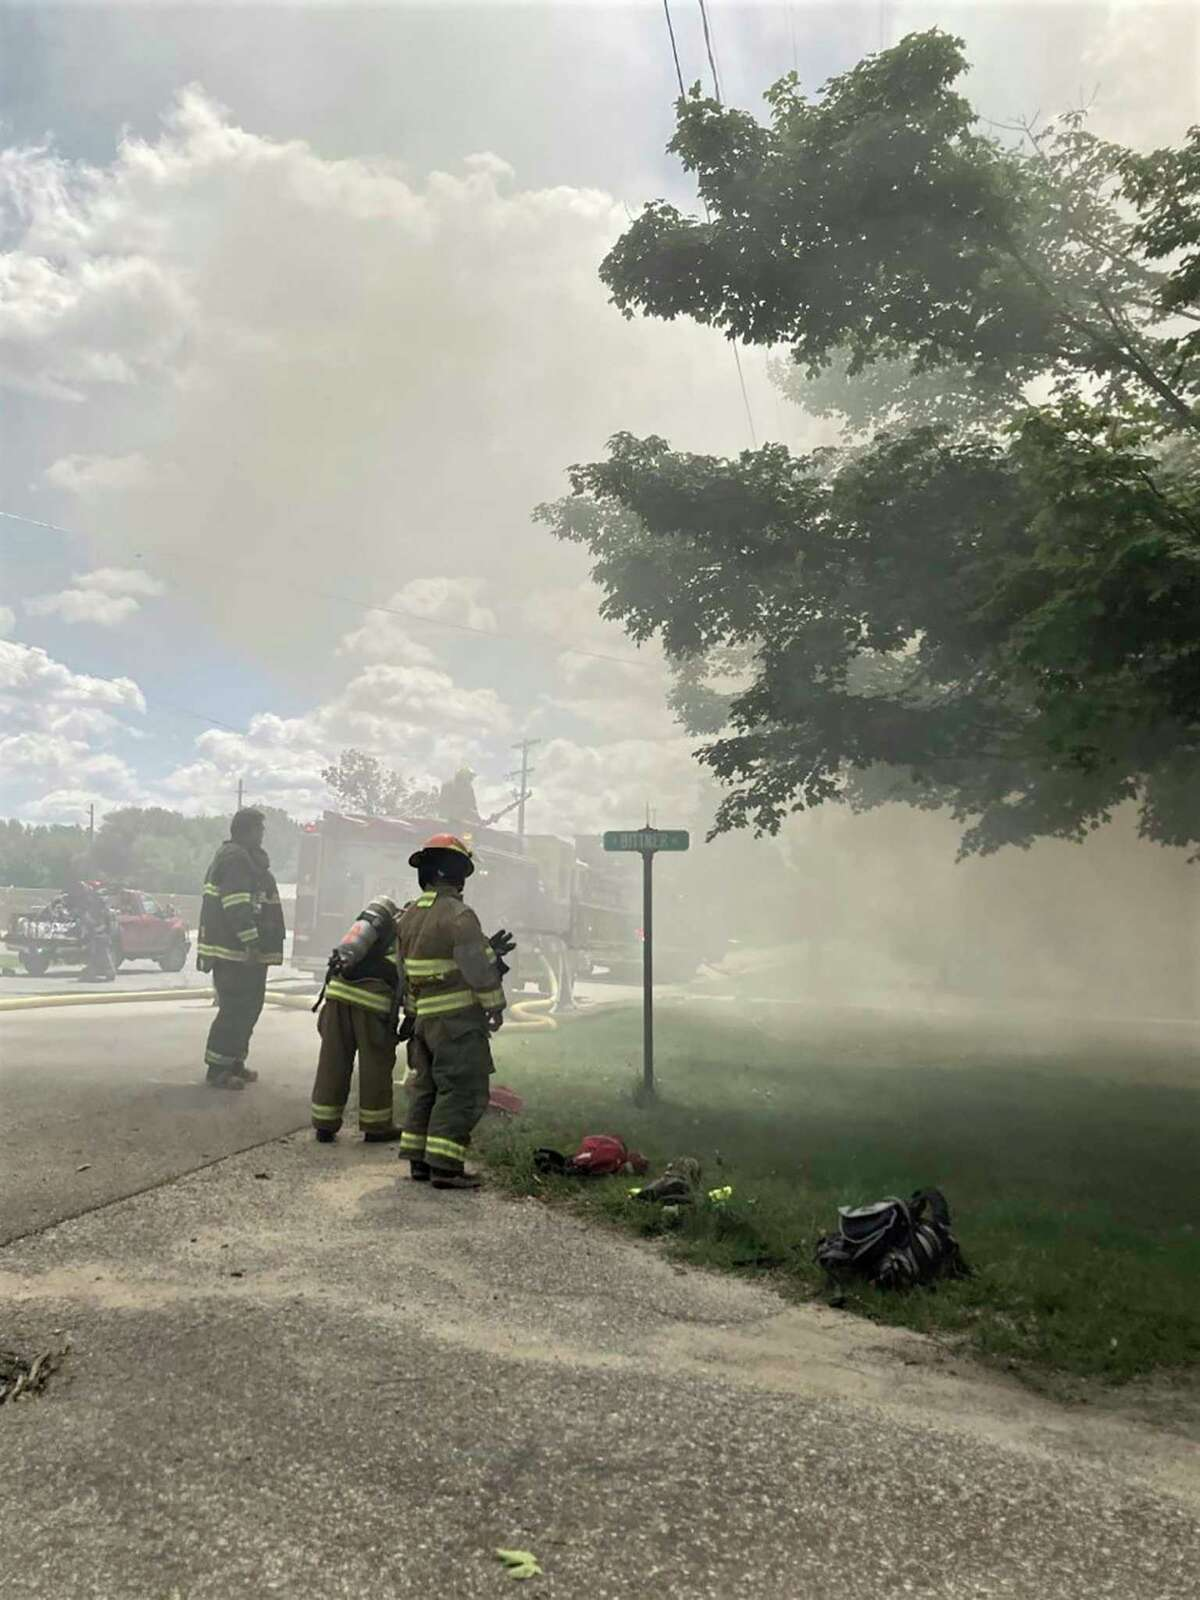 First responders work to put out a house fire Saturday, Aug. 14, on the 400 block of East Bittner Avenue in Reed City. (Photos courtesy of Miguel Troche)